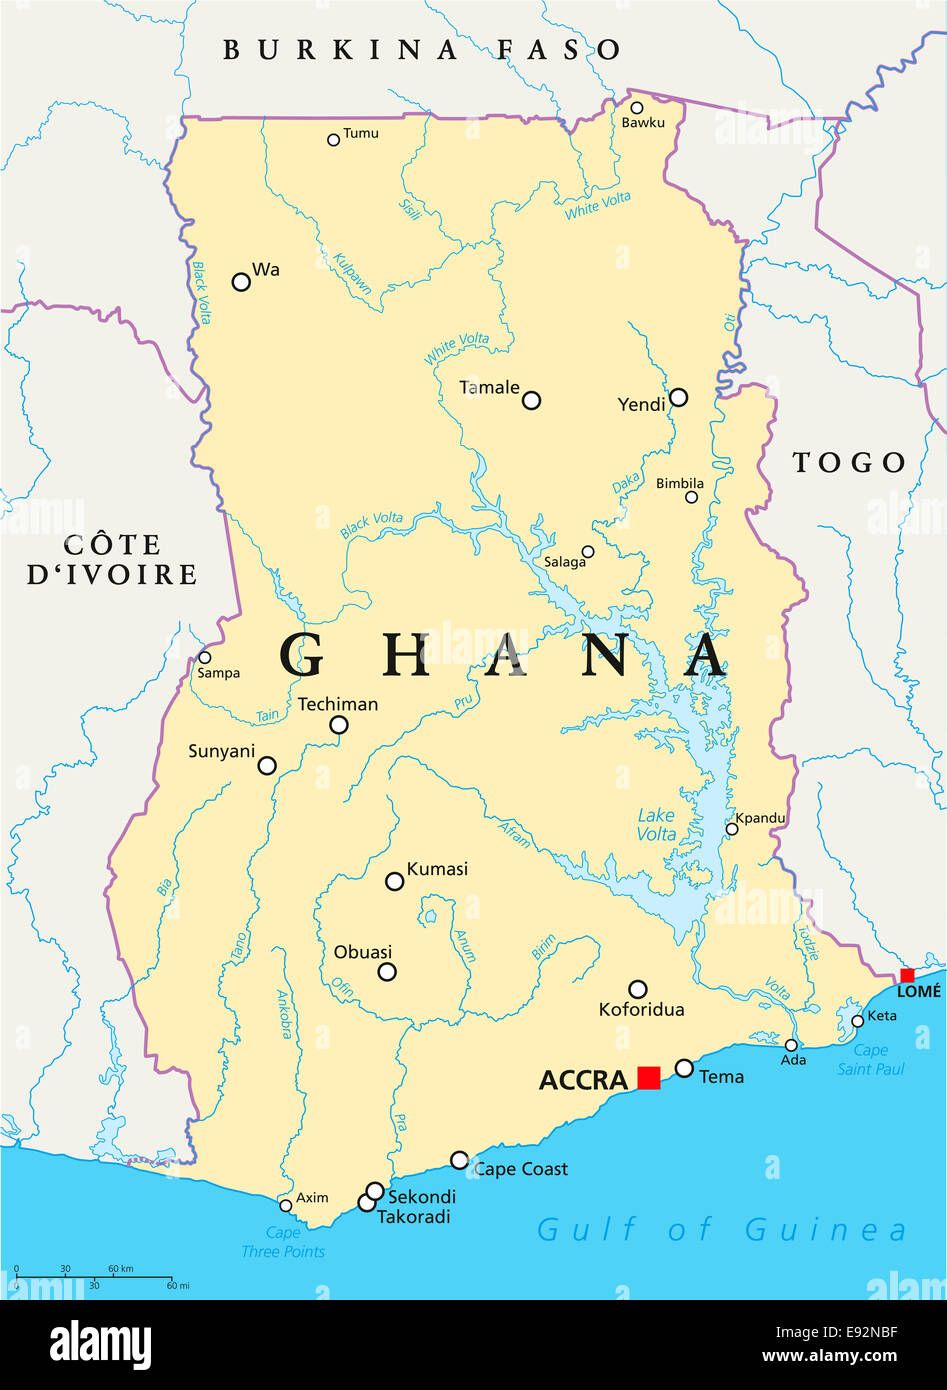 Lake Volta Africa Map.Lake Volta Africa Map Detailed